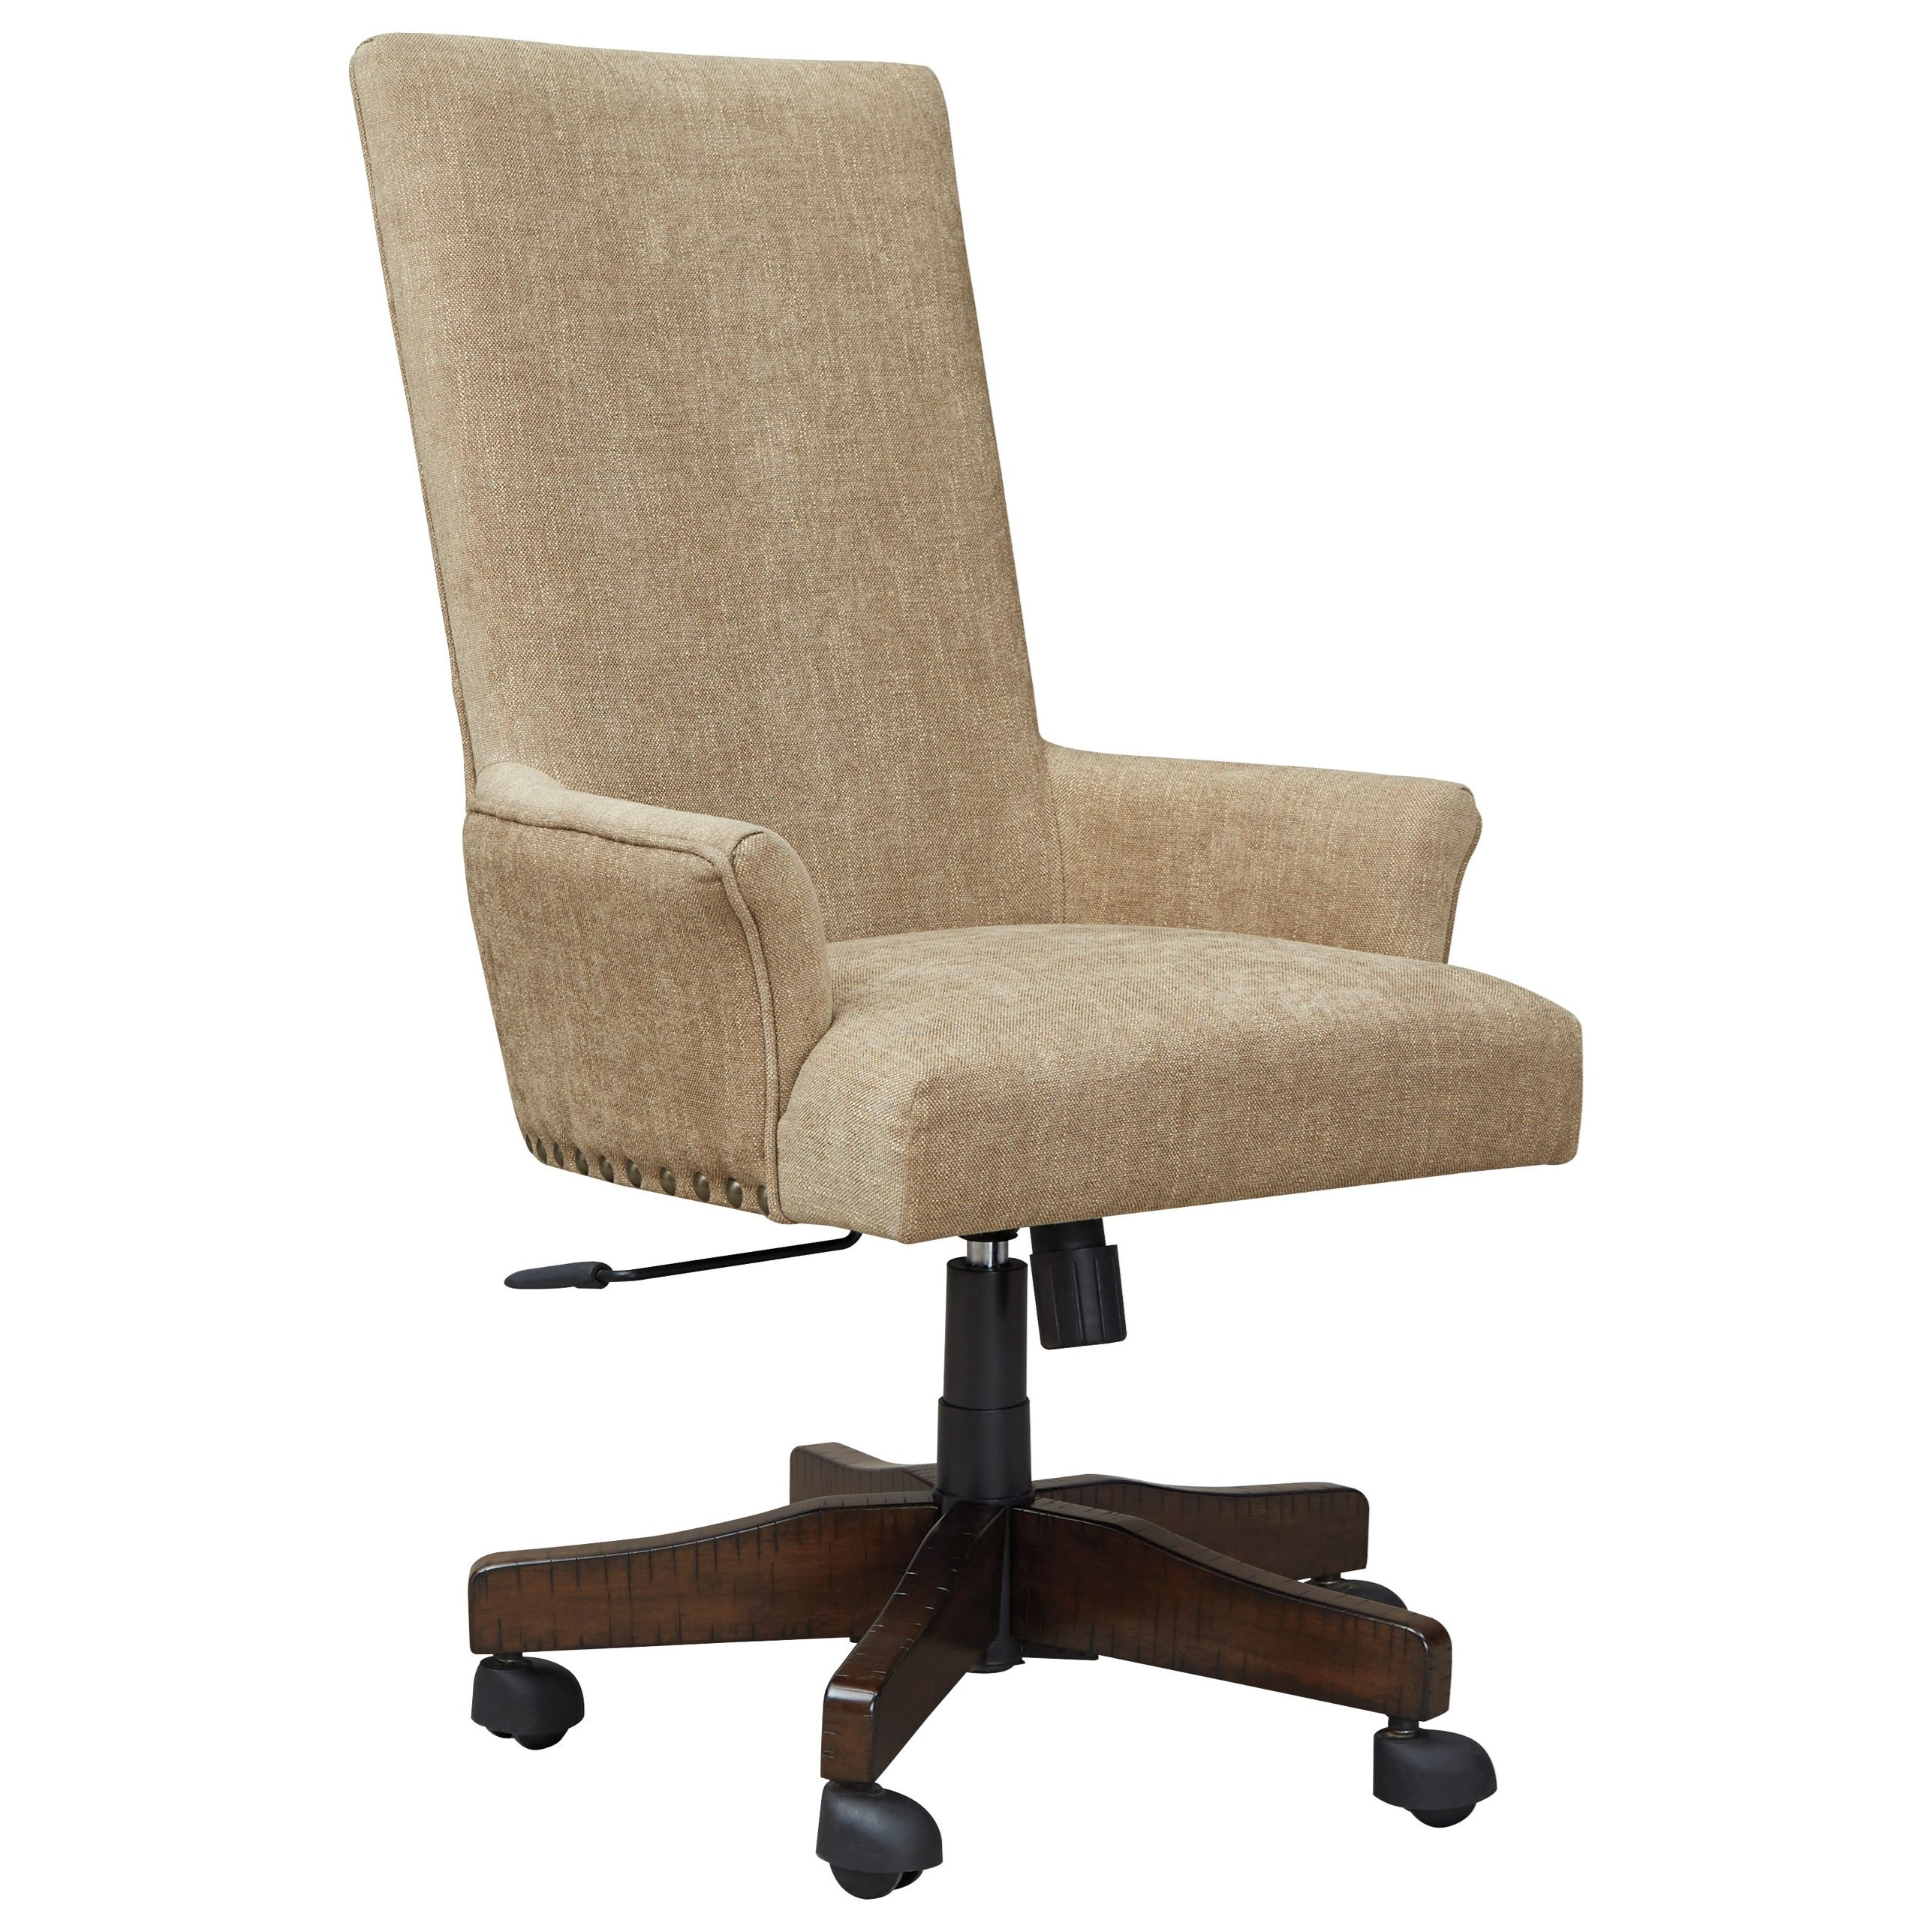 Contemporary Upholstered Swivel Desk Chair with Nailhead